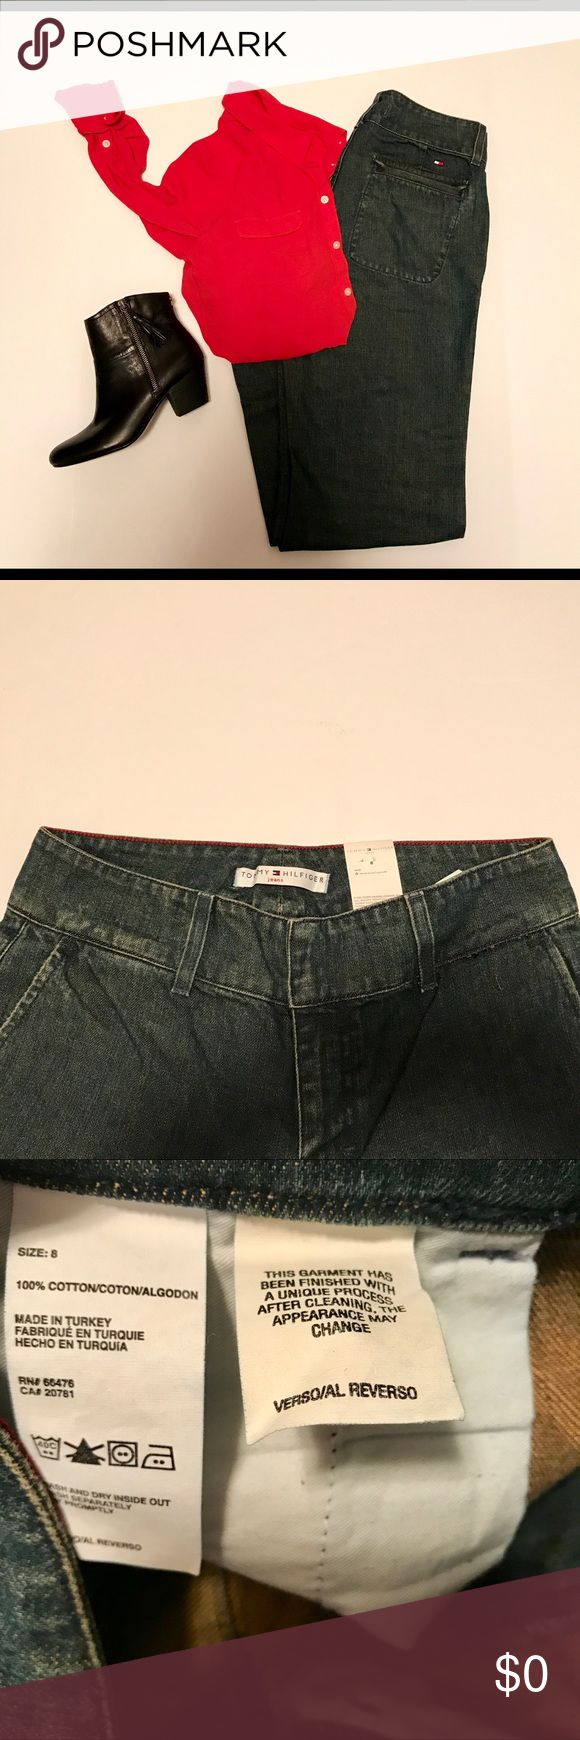 Tommy Hilfiger Ero Jeans 2003: Size 8 Mom Jeans Vintage Tommy Hilfiger Womens Jeans Dark Wash Size 8 ERO-ERO  Excellent Condition - No Stains or Tears Size 8 Dark Wash 100% Cotton Button / Zipper Two Front Slit Pockets, Two Rear Pockets  Belt Loops   Stock Number ERO-ERO Tommy Hilfiger Jeans